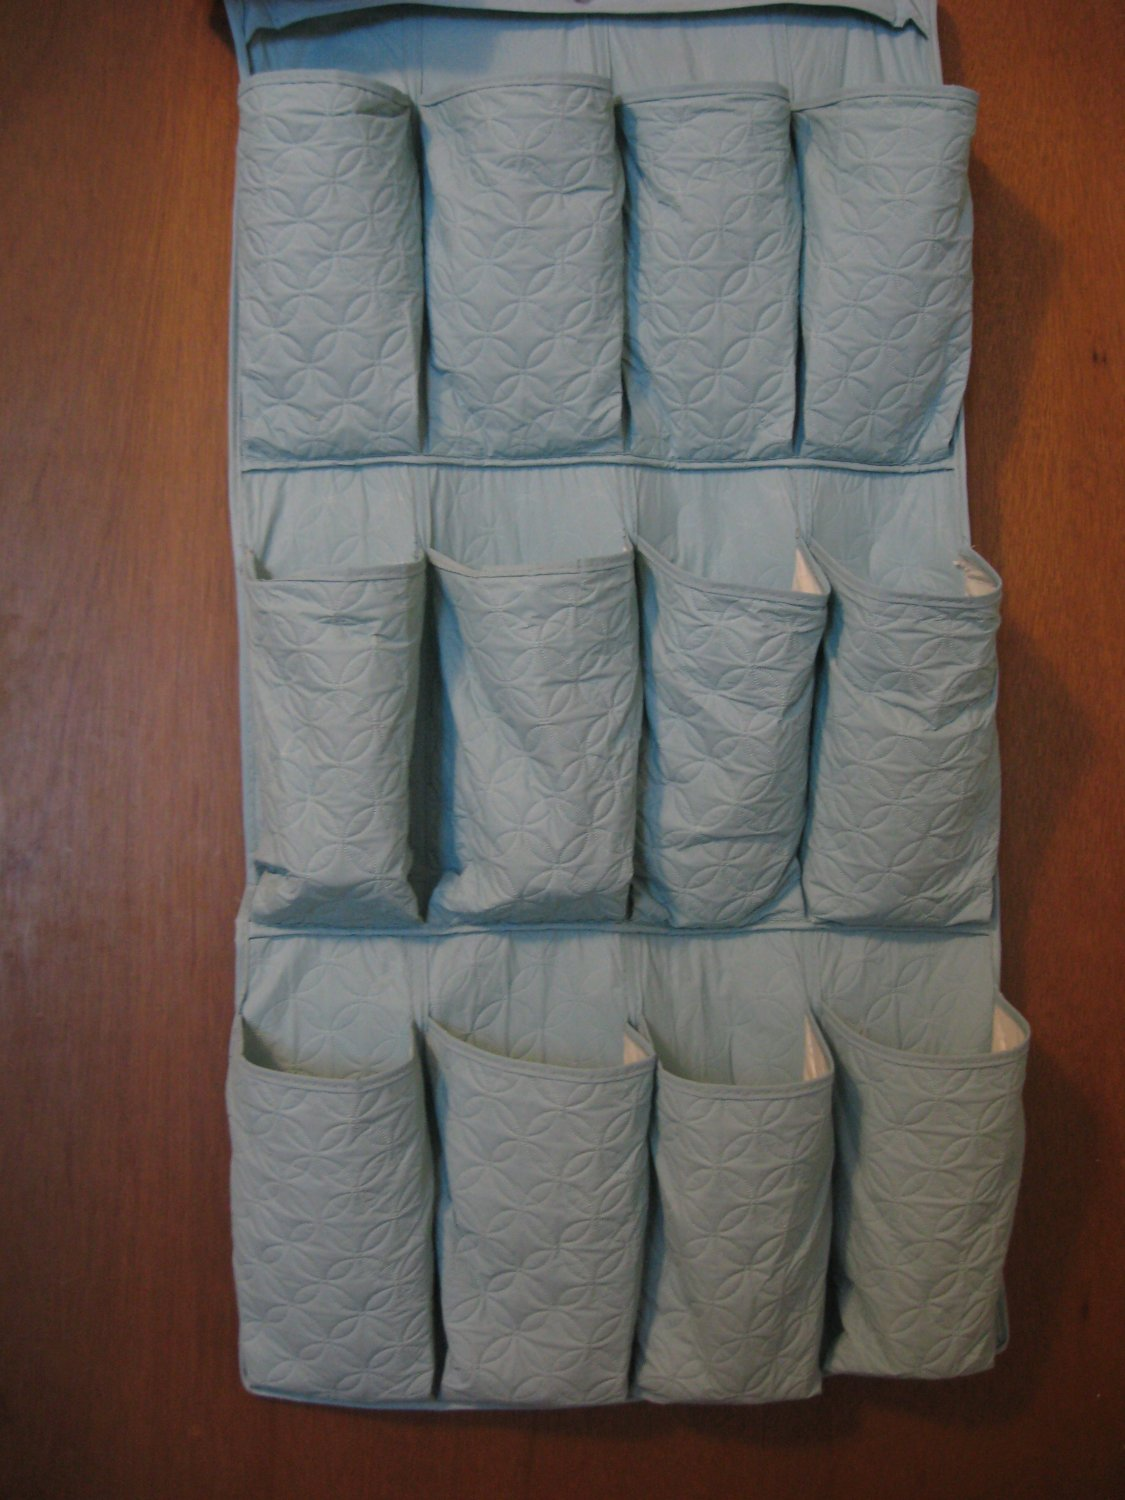 Vintage Hanging Shoe Organizer 12 Pockets Light Turquoise Quilted Style NICE